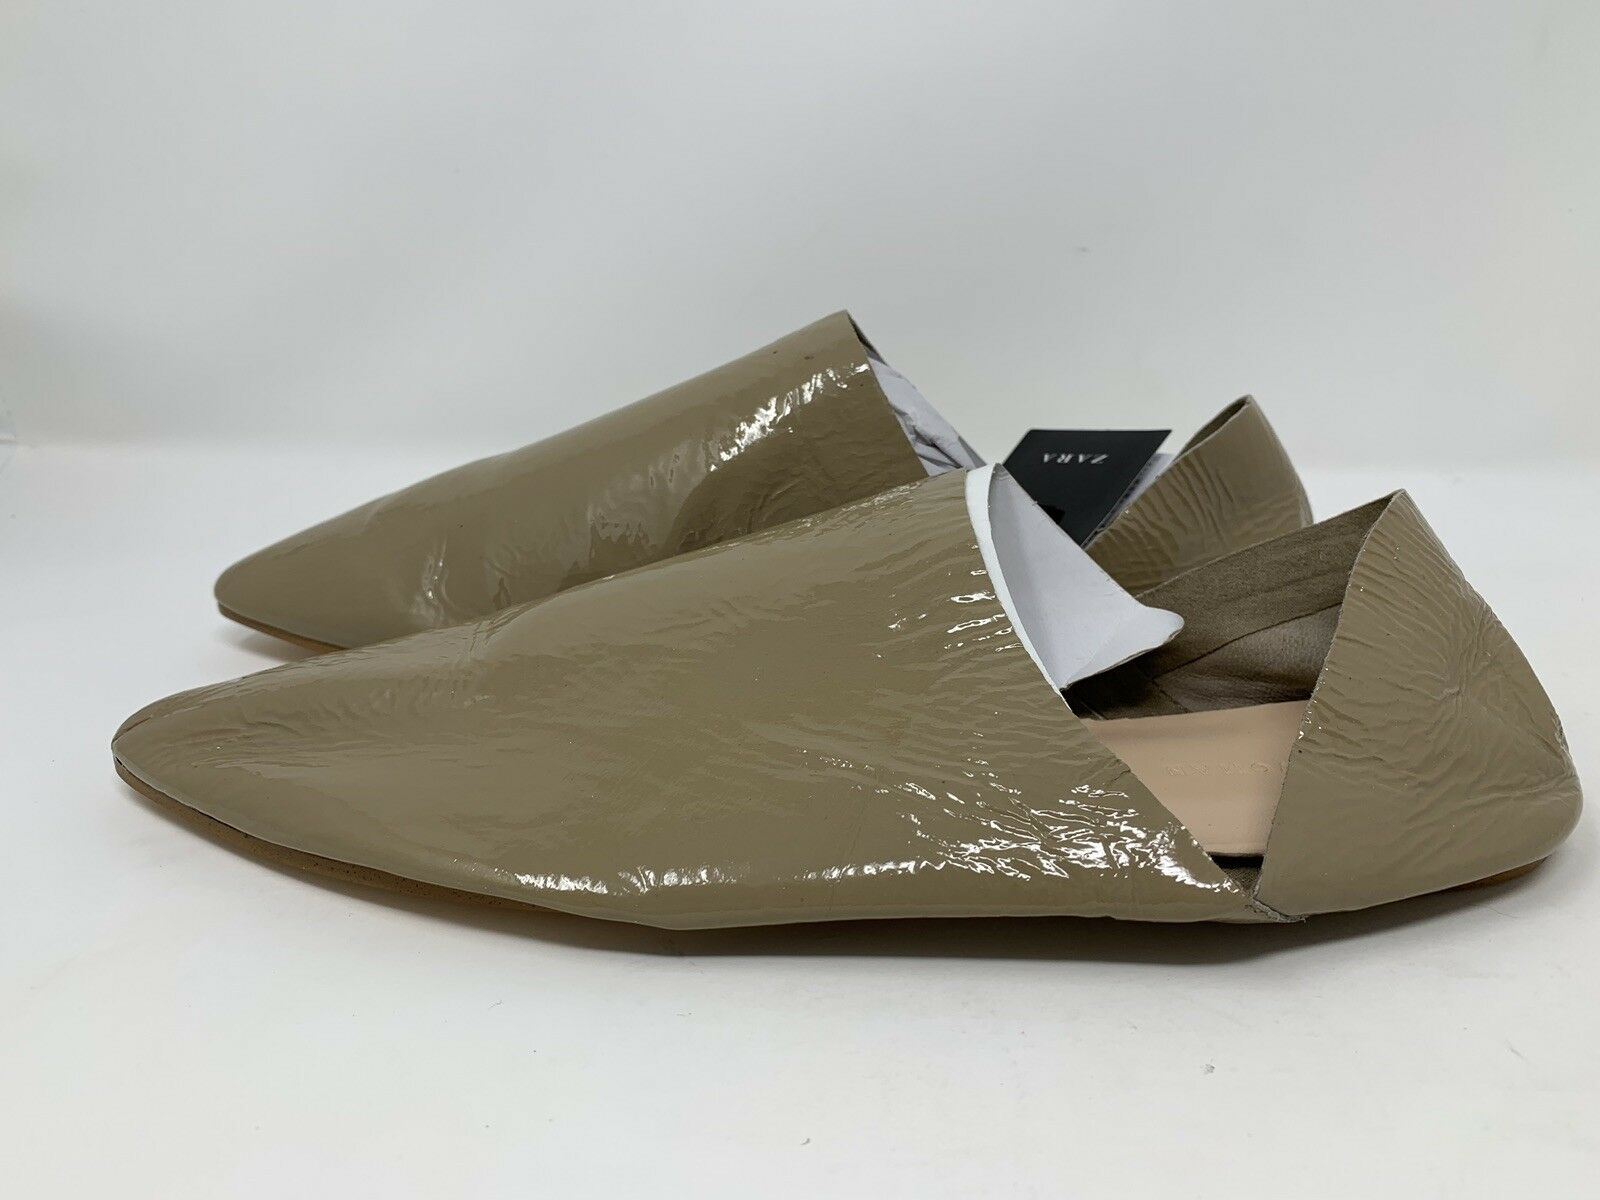 Zara Women's Patent Leather Babouches Flats Flats Flats shoes EU 39 US 8 Taupe Creased NWT 17f8da